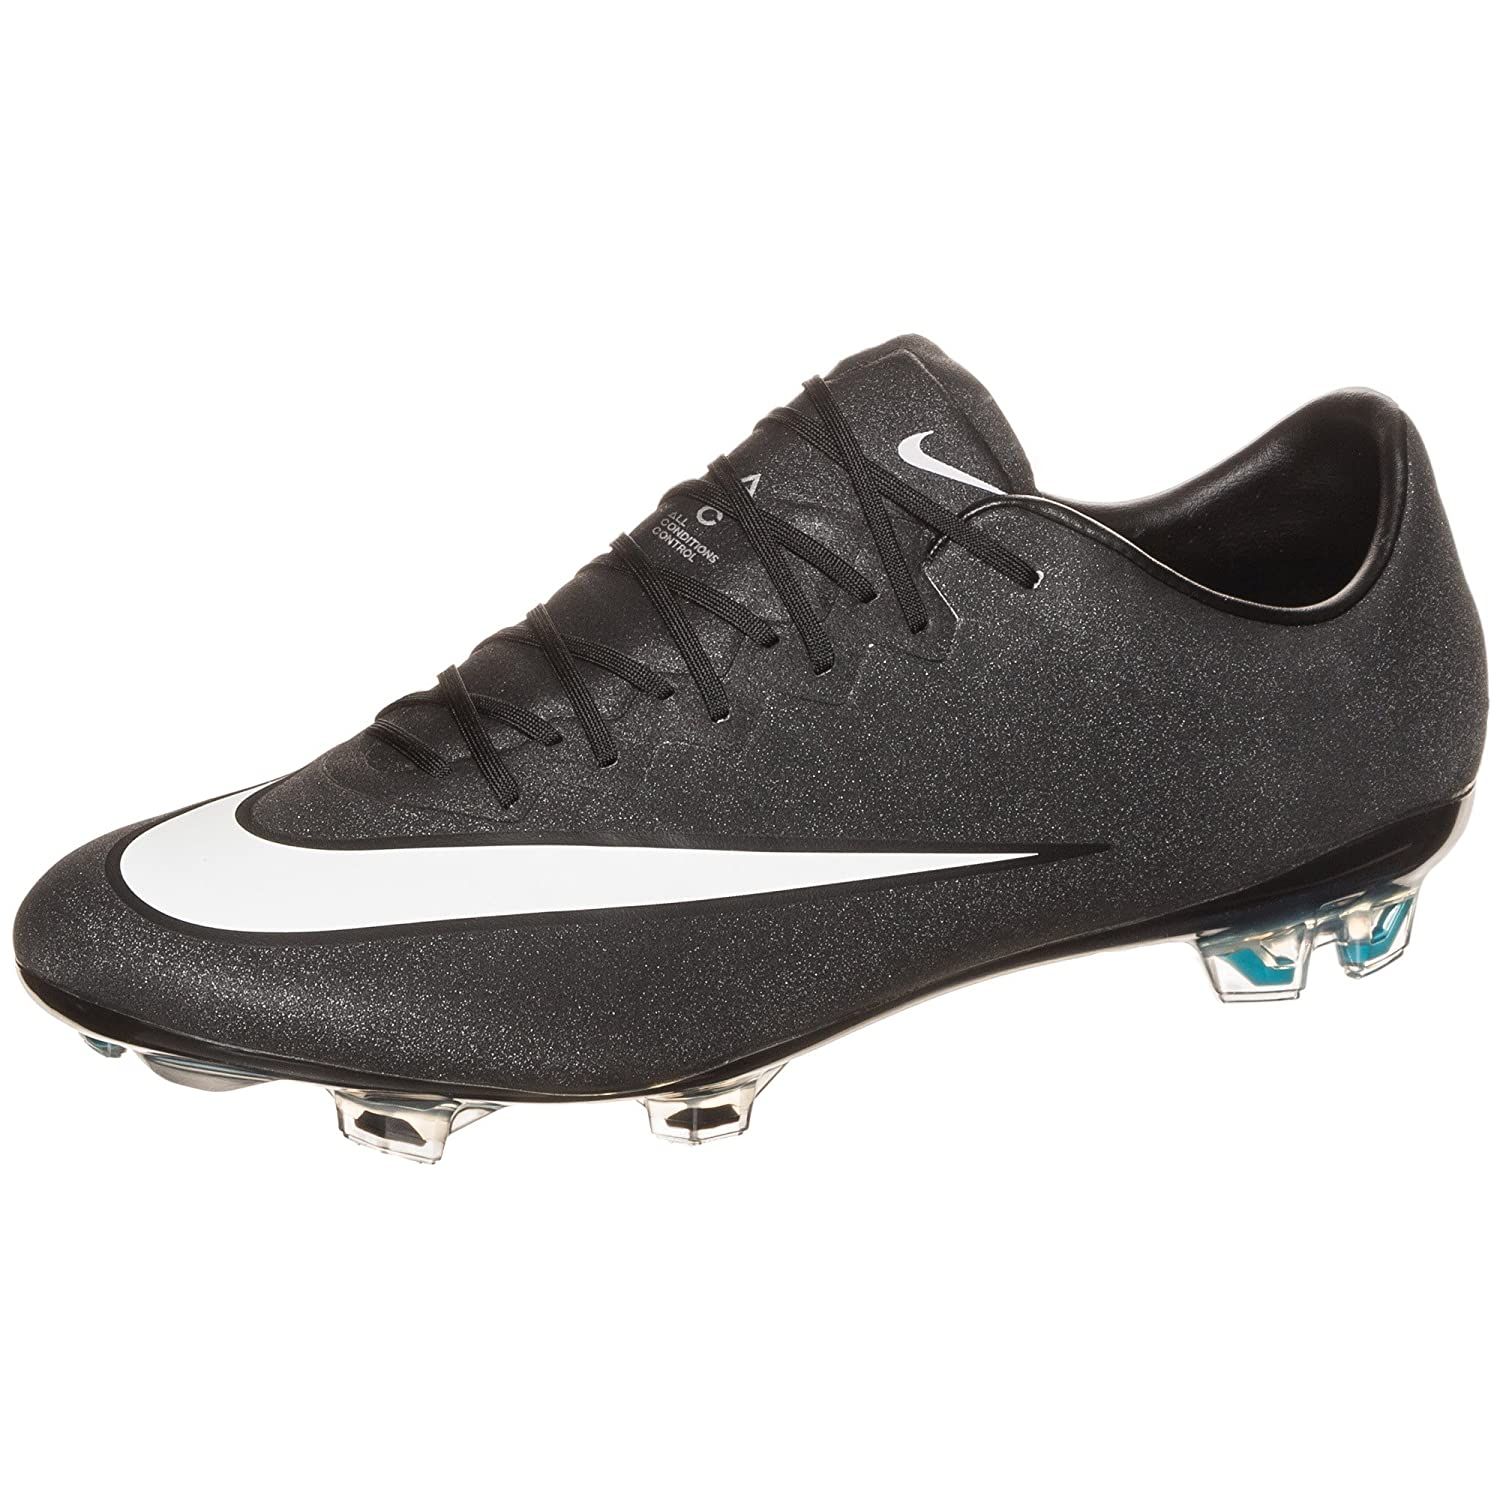 Nike Men\u0027s Mercurial CR7 Vapor X FG Soccer Cleats - (Black/Turquoise) (